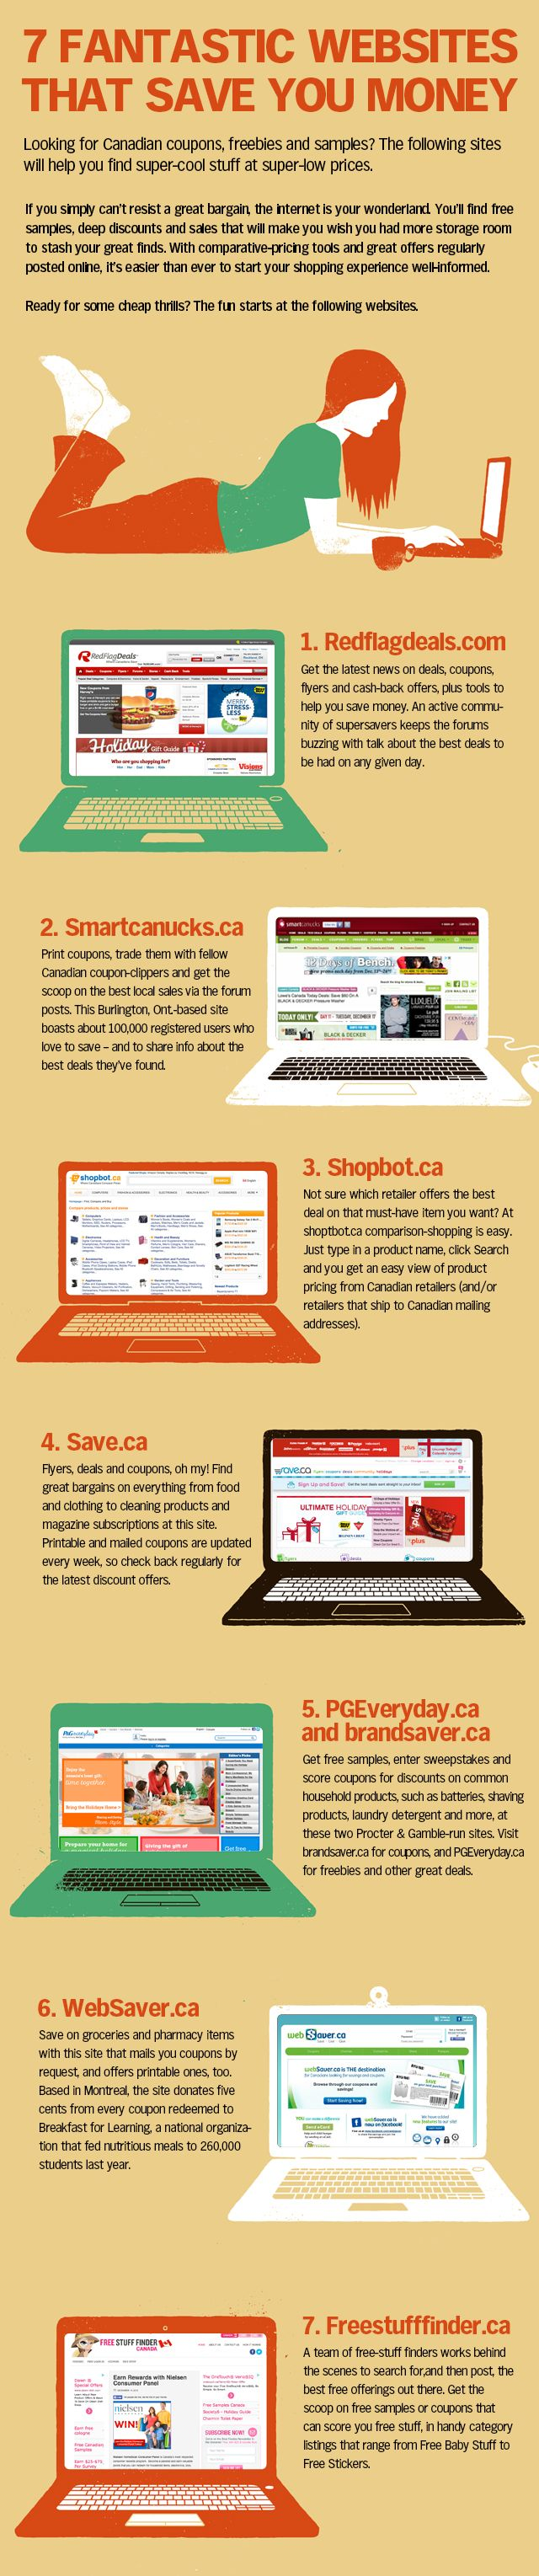 #INFOGRAPHIC Looking for Canadian coupons, freebies and samples? Visit these 7 websites